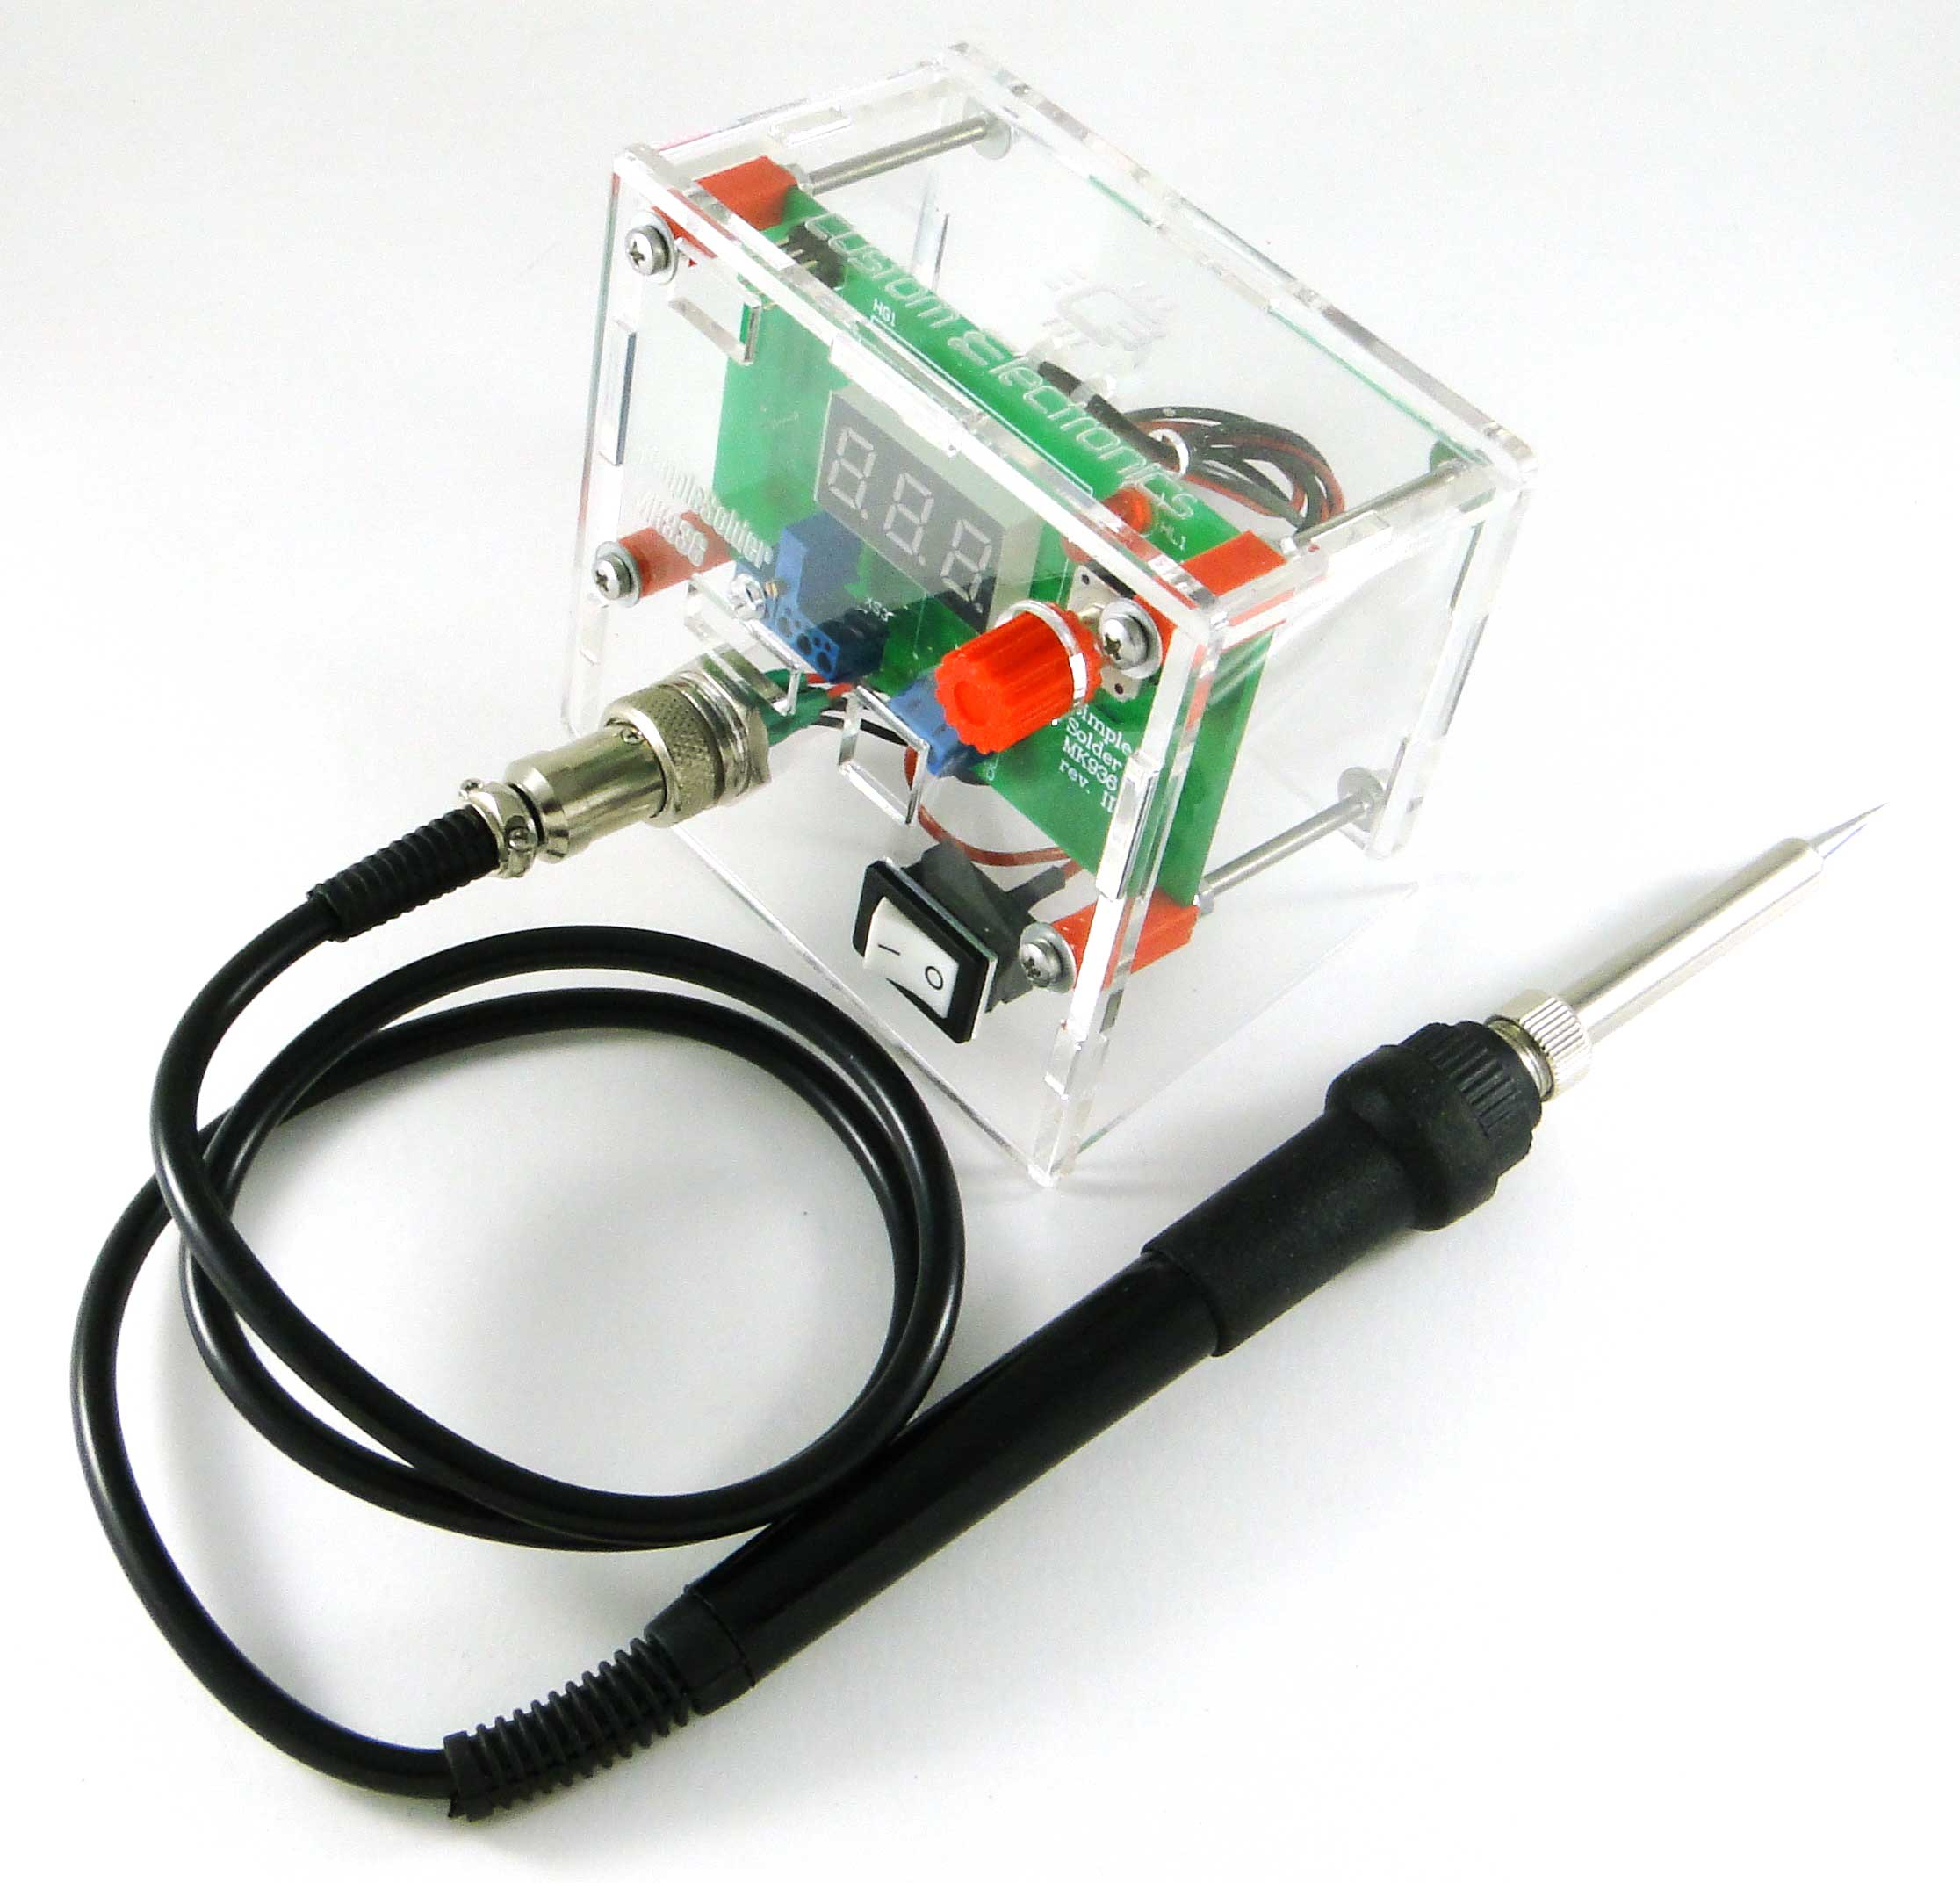 Simple Solder MK936 SMD. Soldering station on SMD-components with their own hands